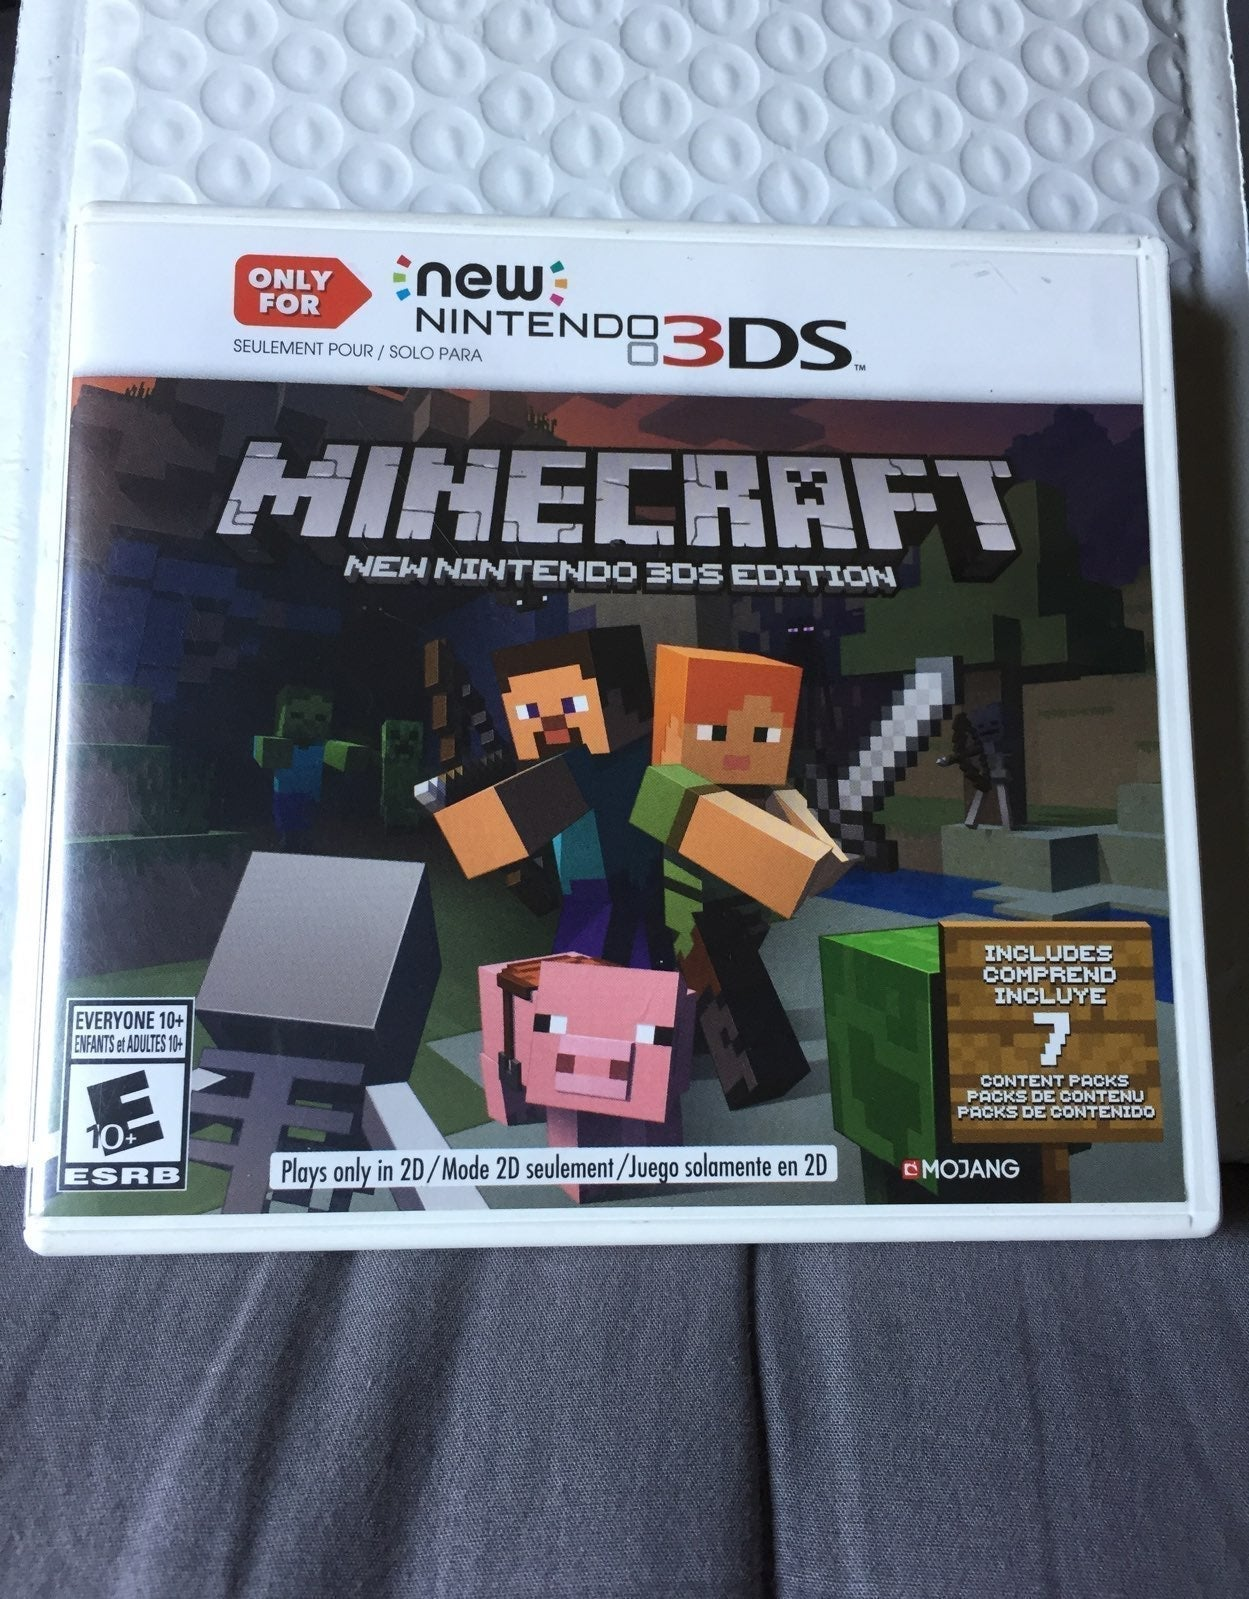 Only for new Nintendo 3DS minecraft